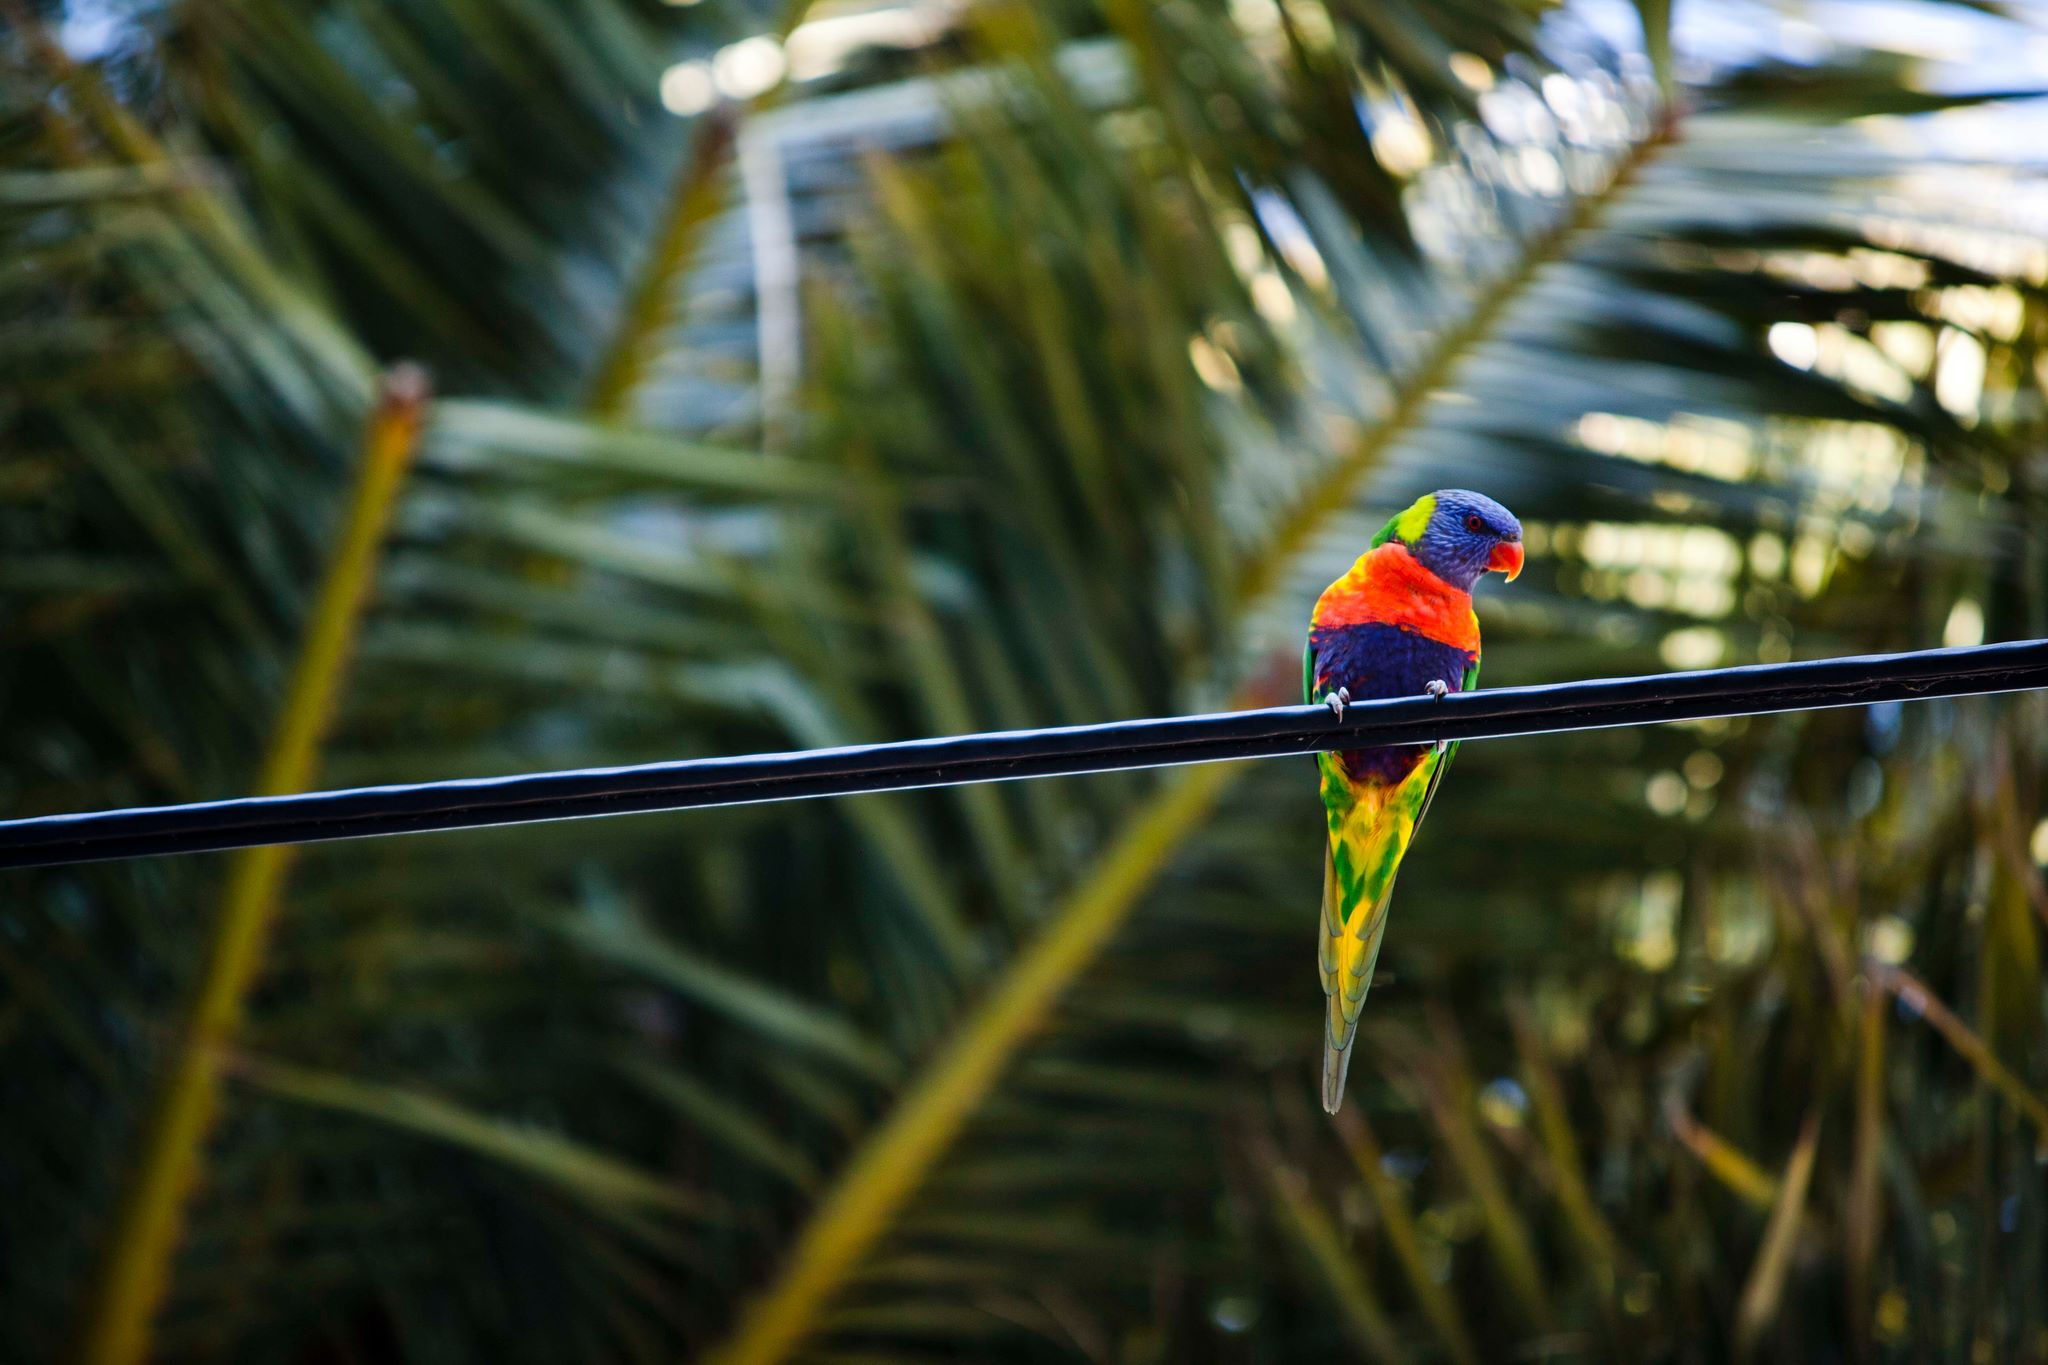 There are so many parrots here in Australia! It is amazing to see them flying around our work areas!